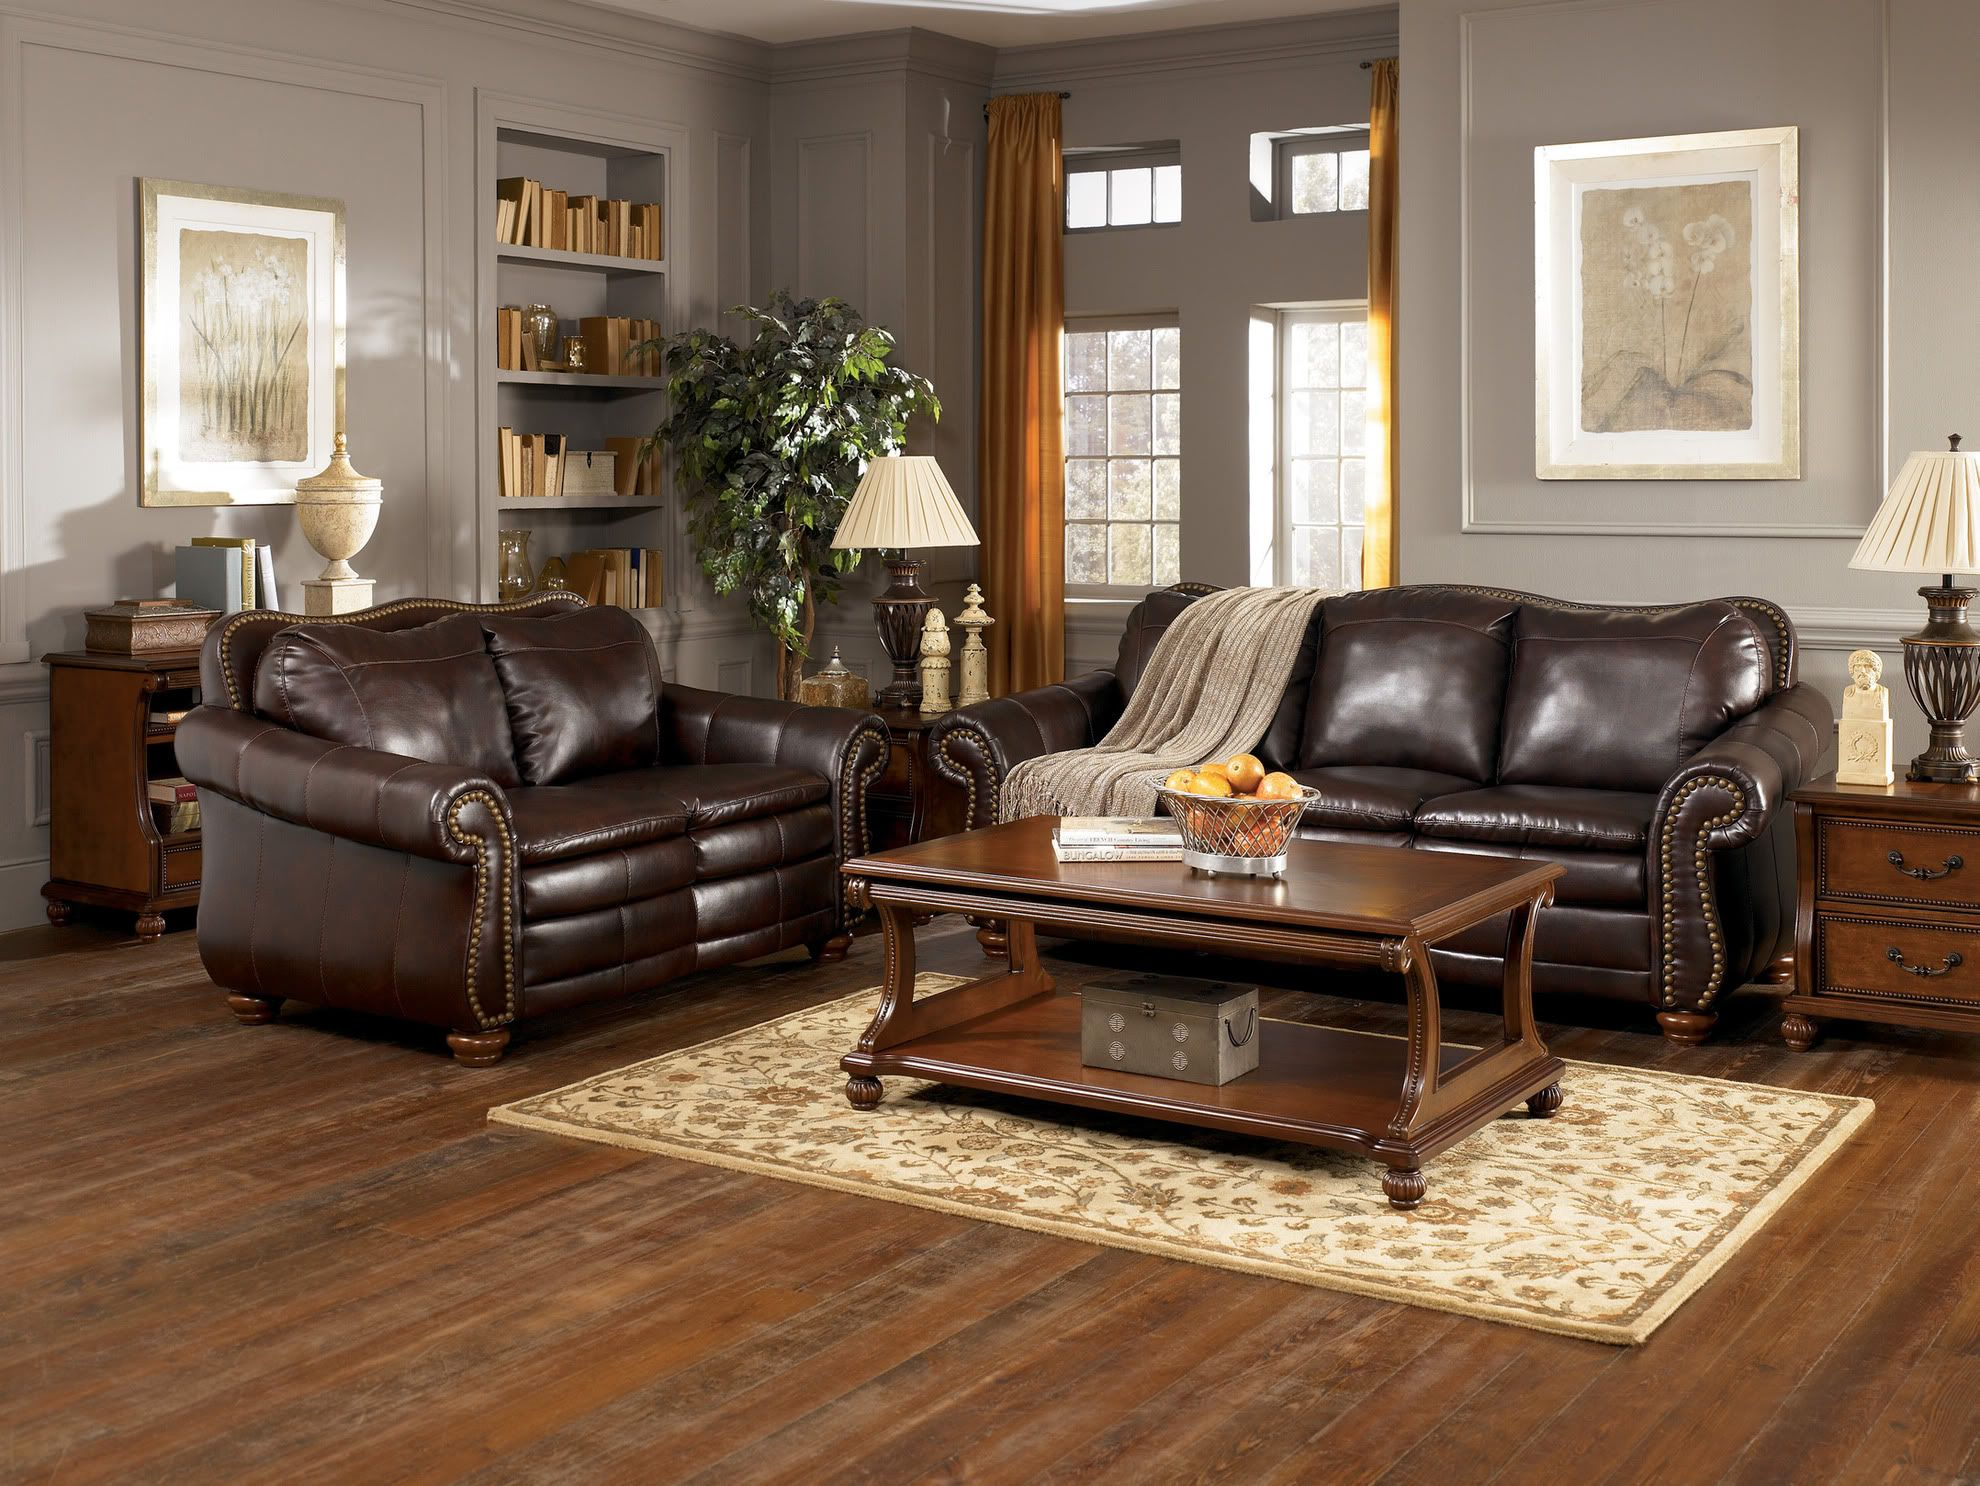 Dark Gray Living Room Fetching Grey Living Room With Brown Furniture Design